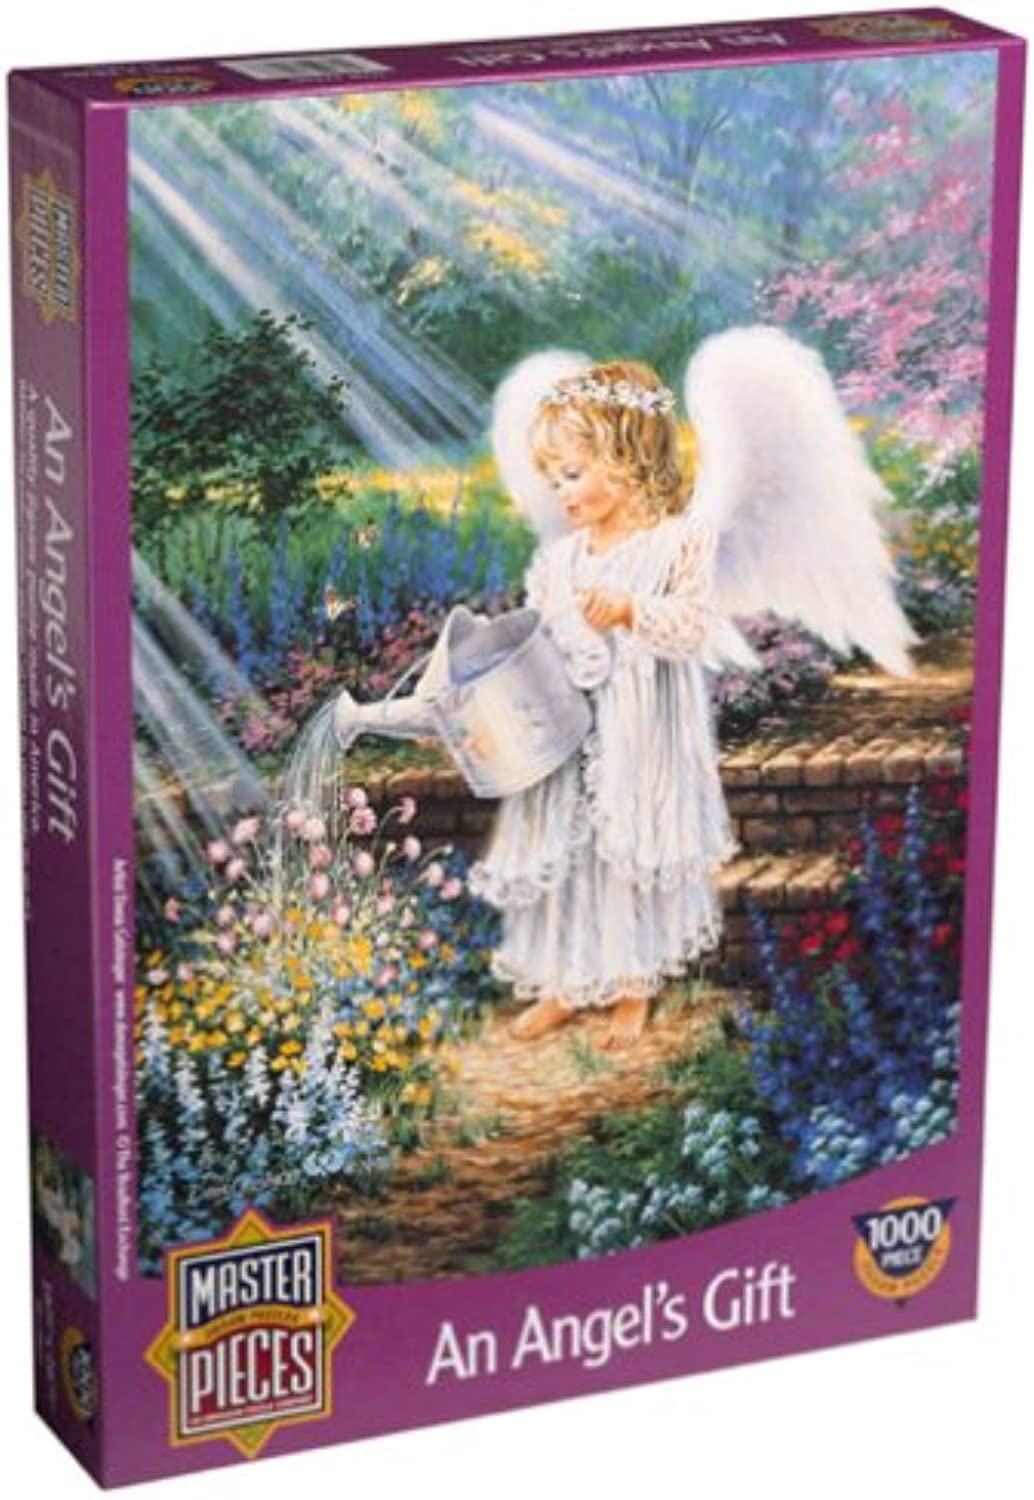 Angel's Gift 1000 Piece Puzzle